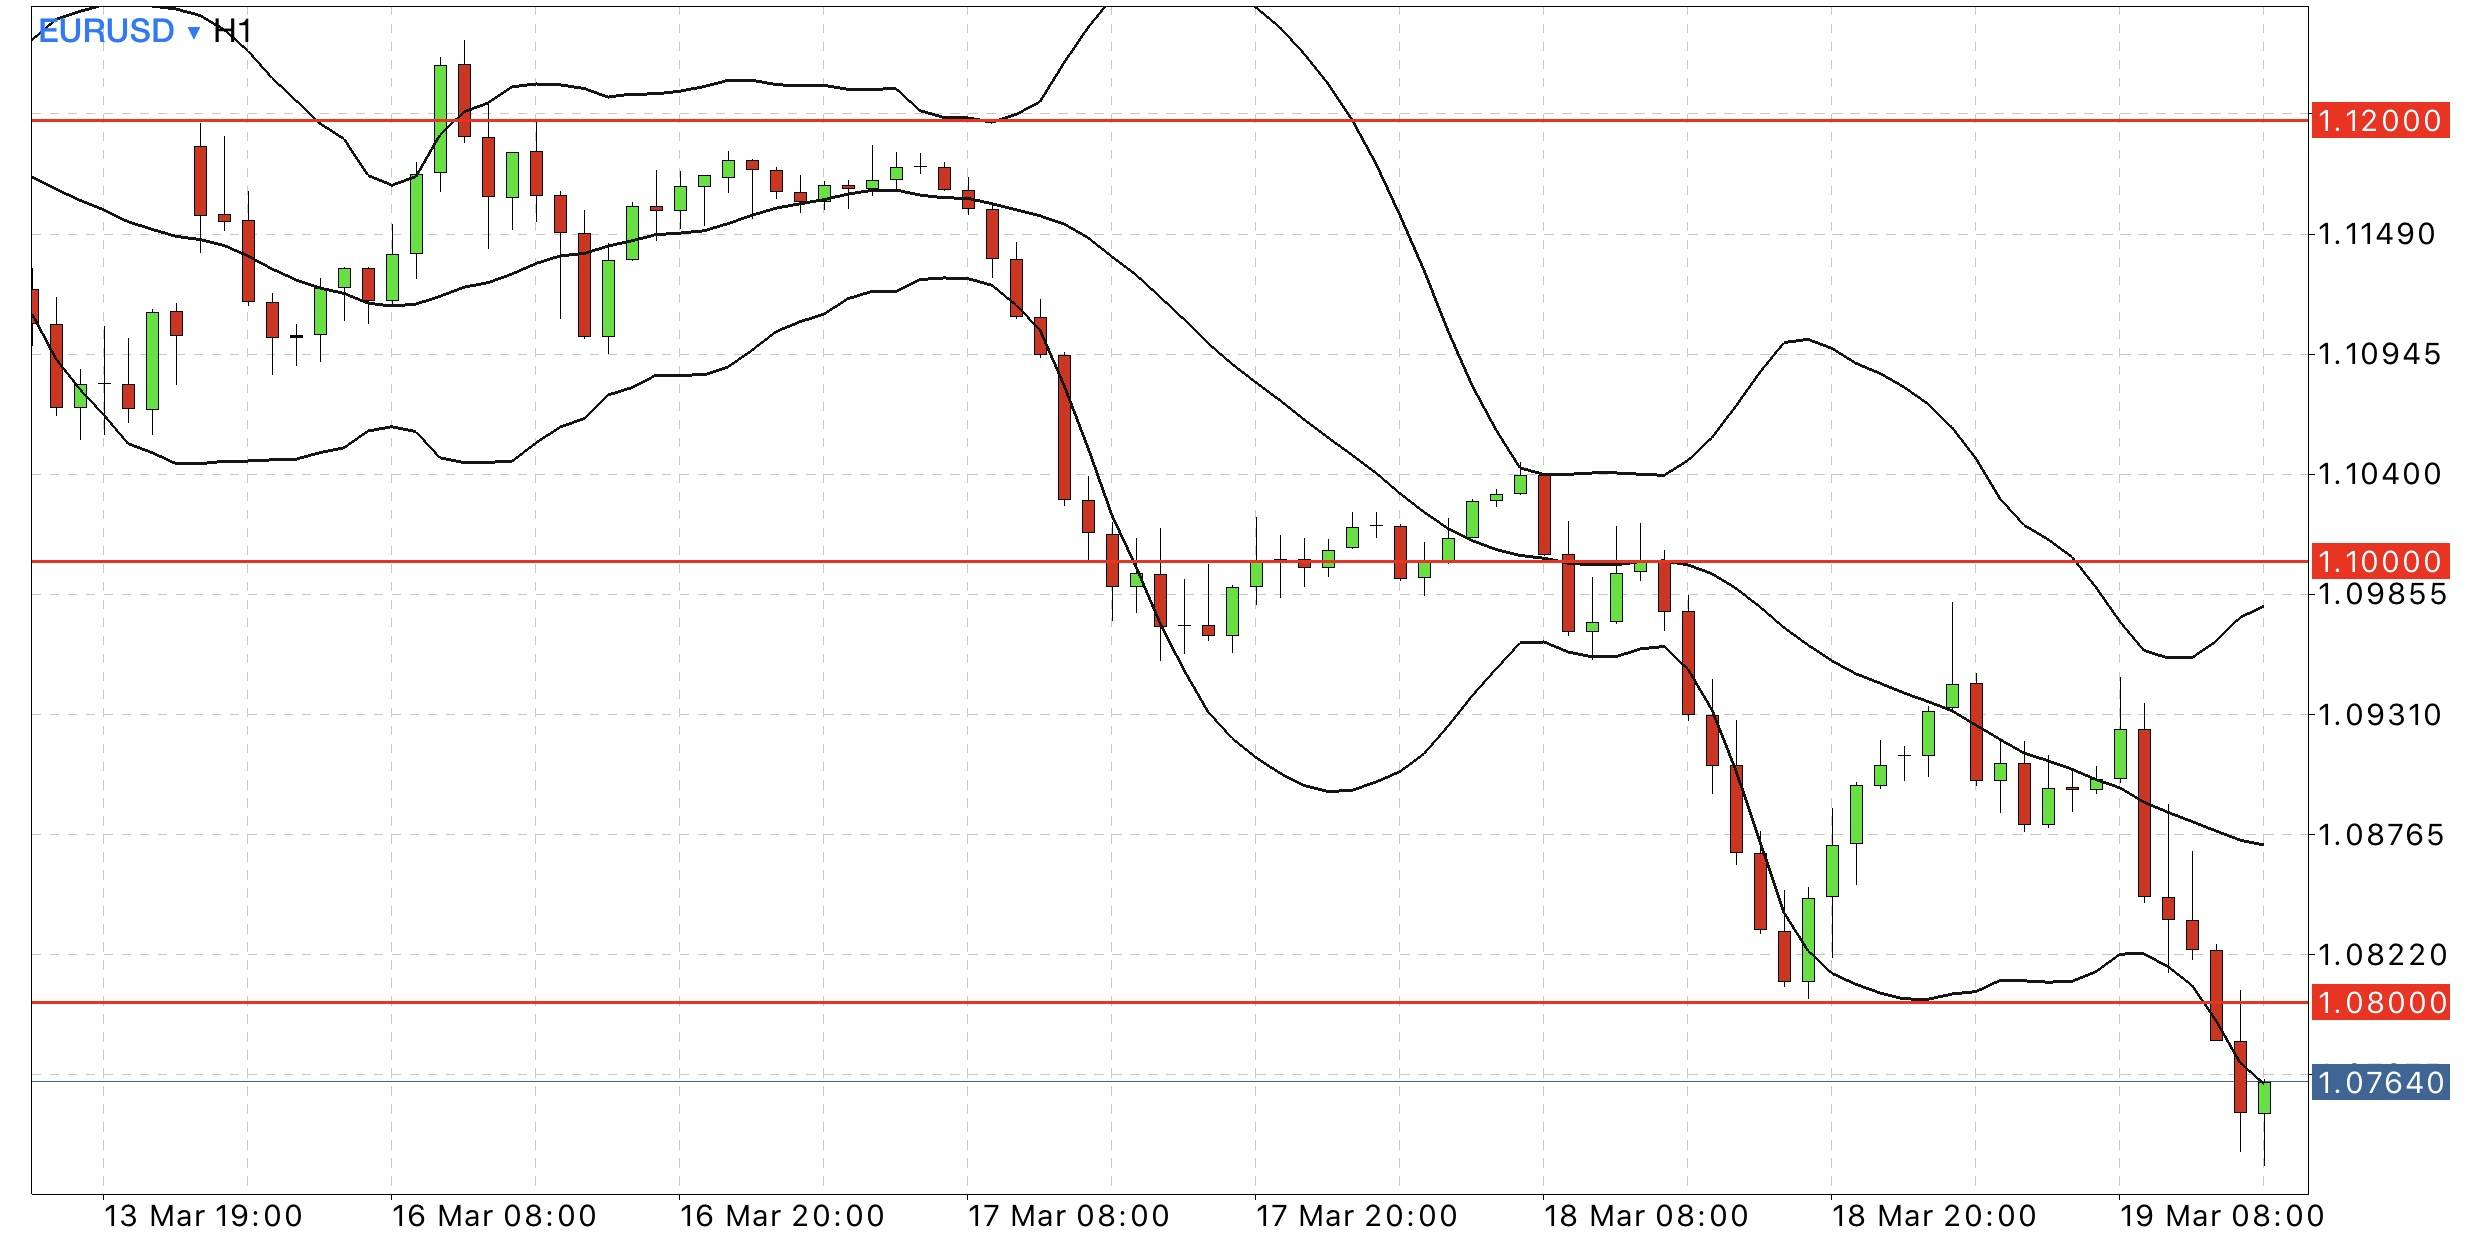 eur usd hourly